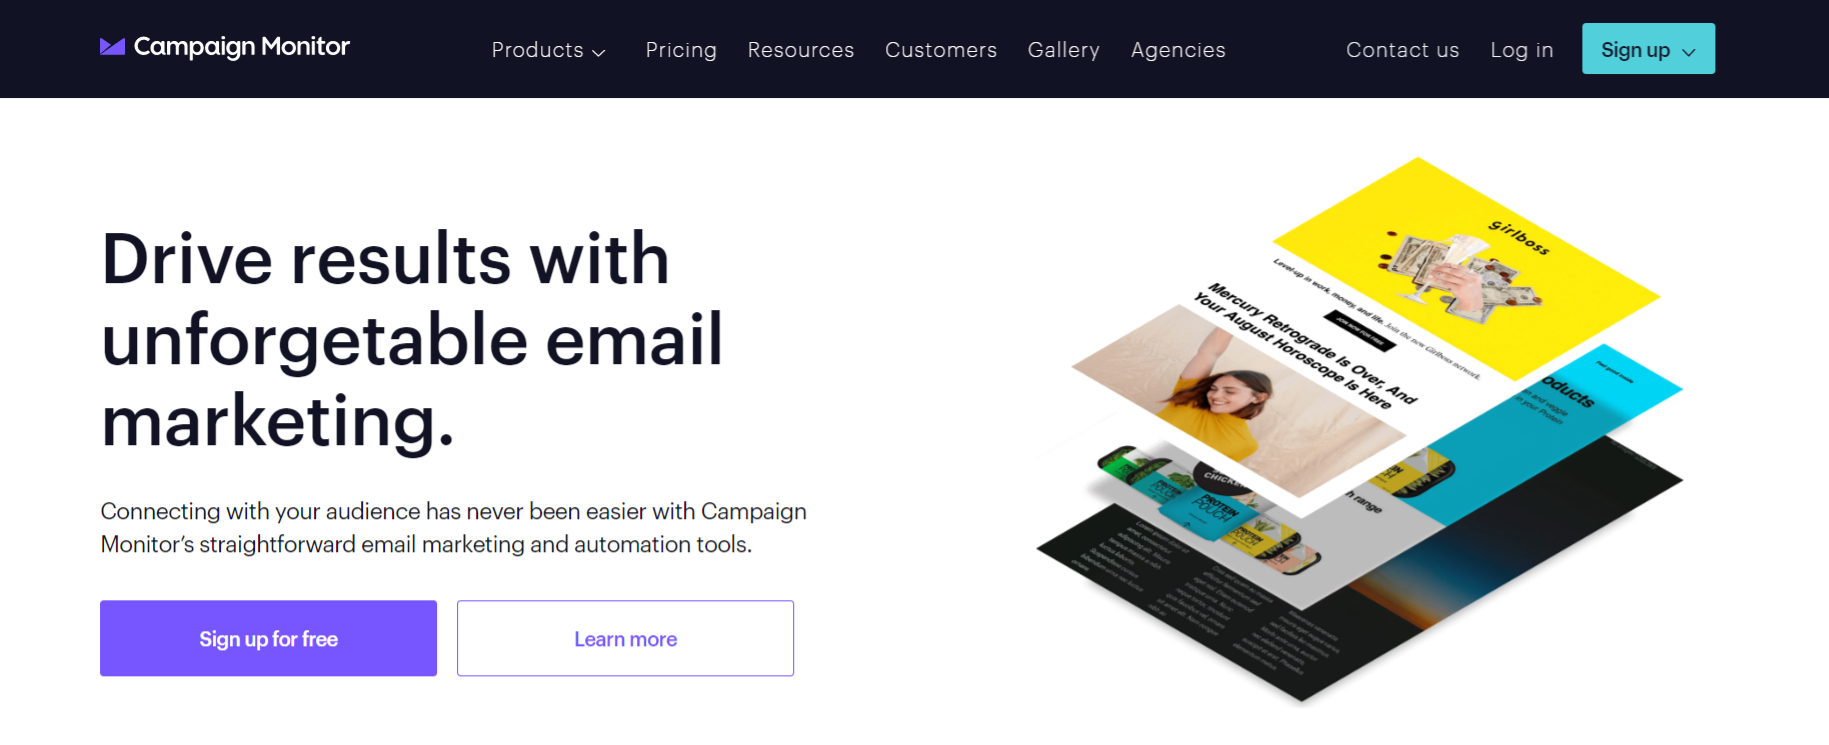 Campaign monitor: Email marketing software